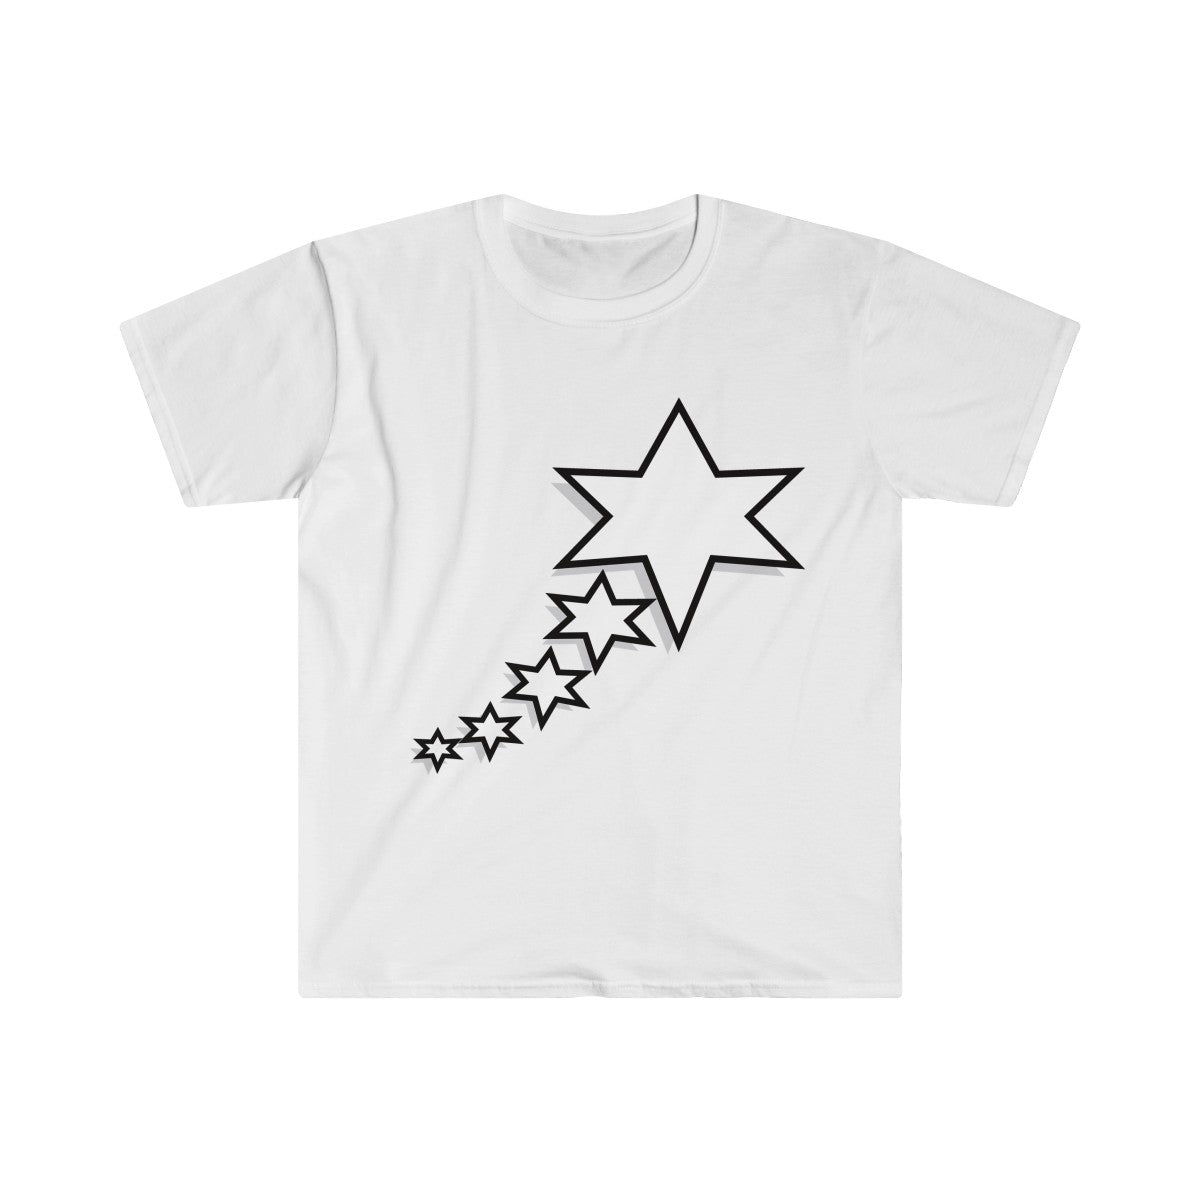 Men's Fitted Short Sleeve Tee - 6 Points 5 Stars (White)